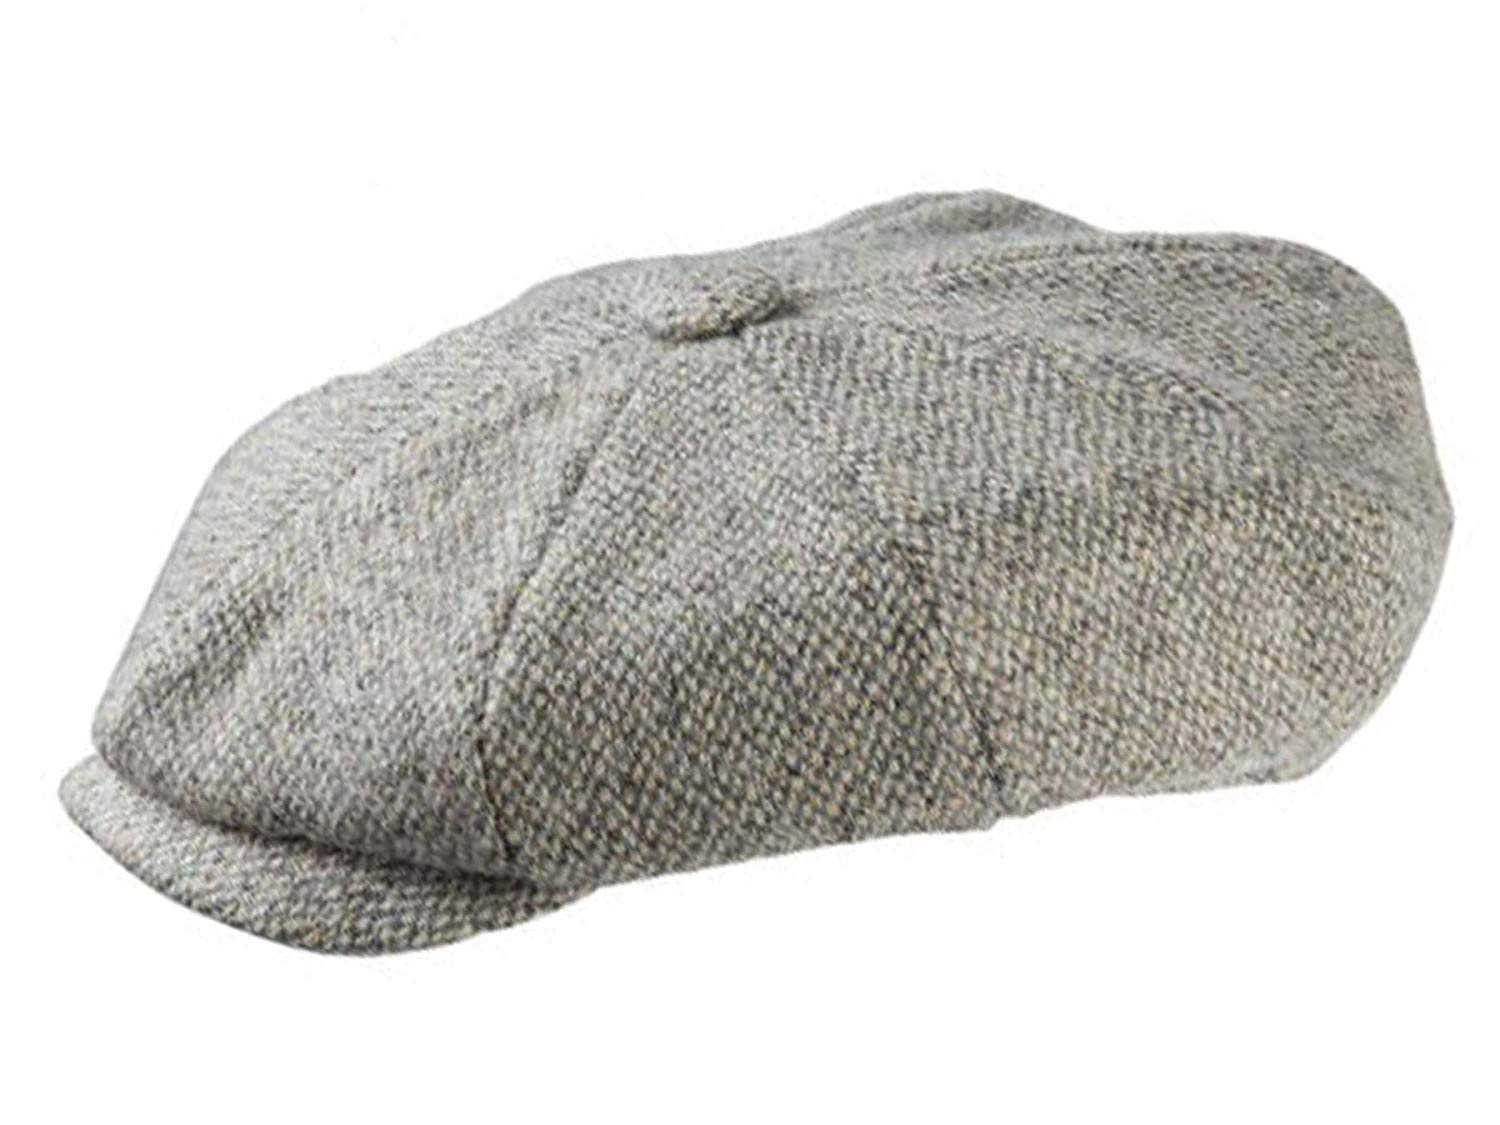 8f6e9cf920bf2 Get Quotations · Olney Redford Harris Tweed Newsboy Cap